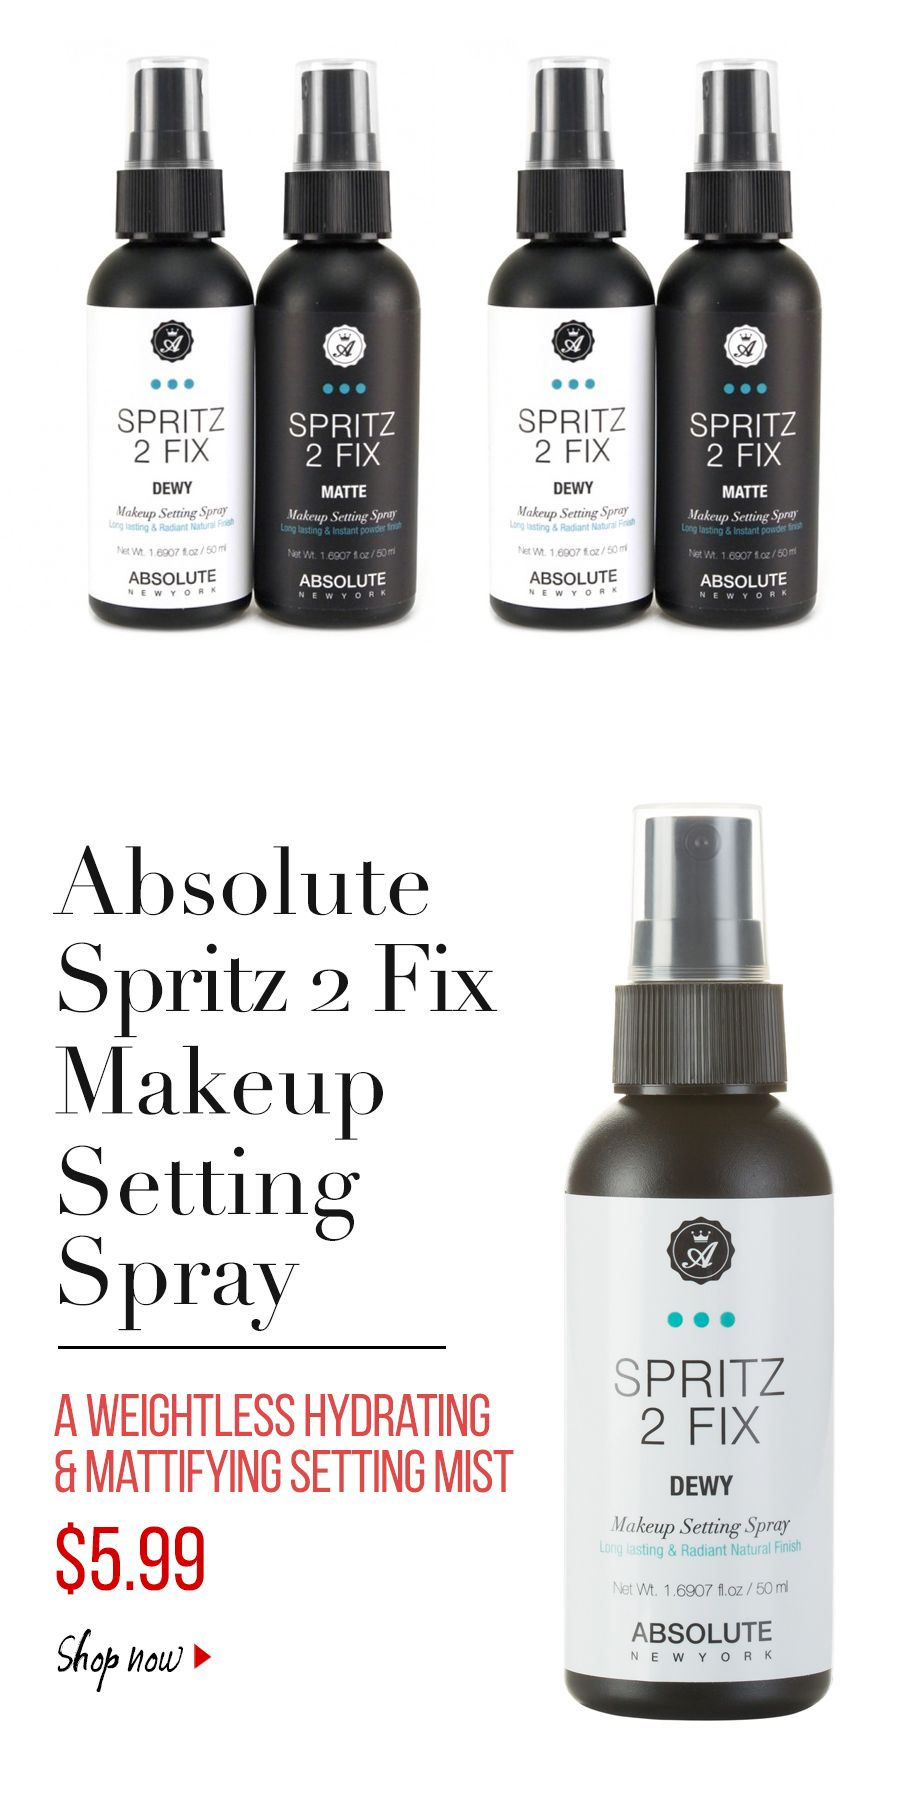 Absolute Spritz 2 Fix Makeup setting Spray Makeup